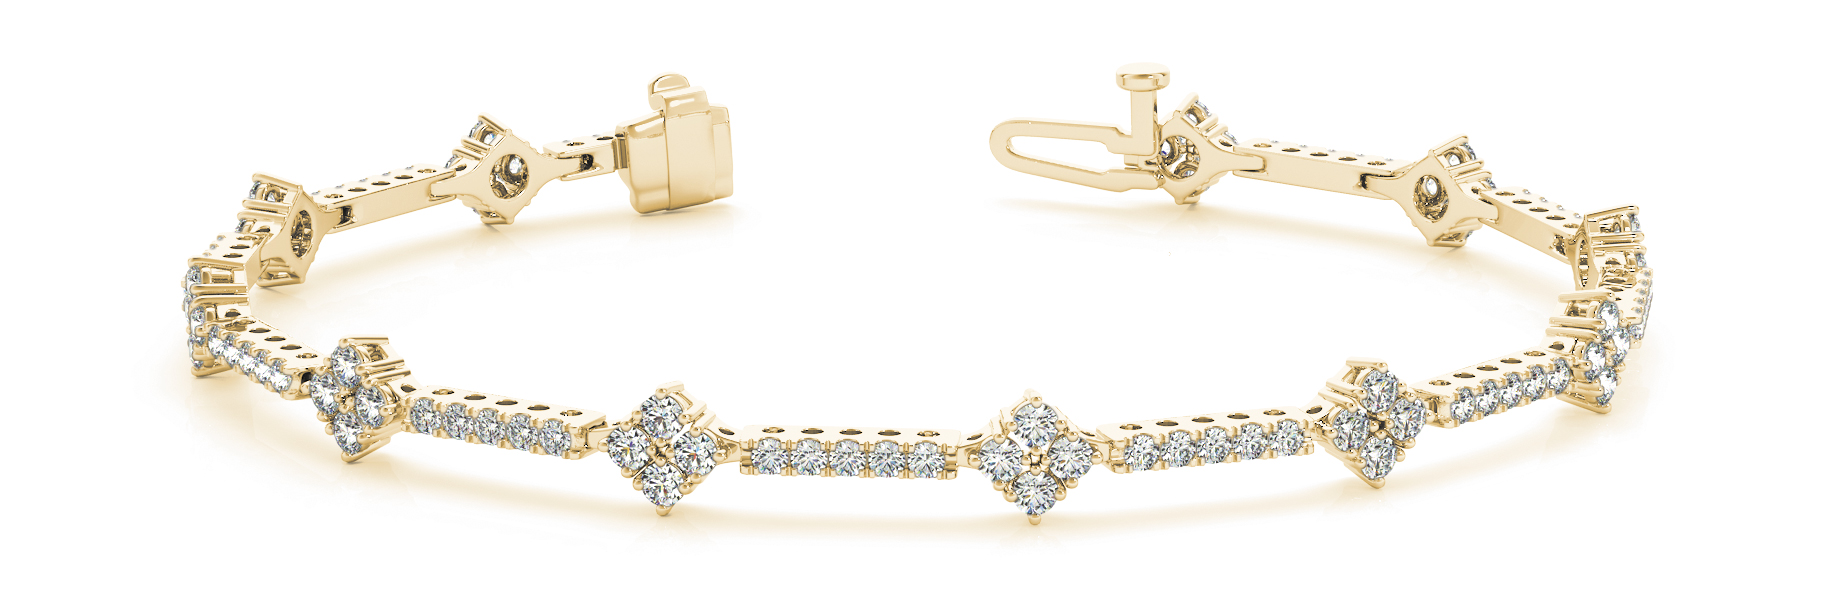 1.29 Carat Round Diamond Quad Bracelet Yellow Gold